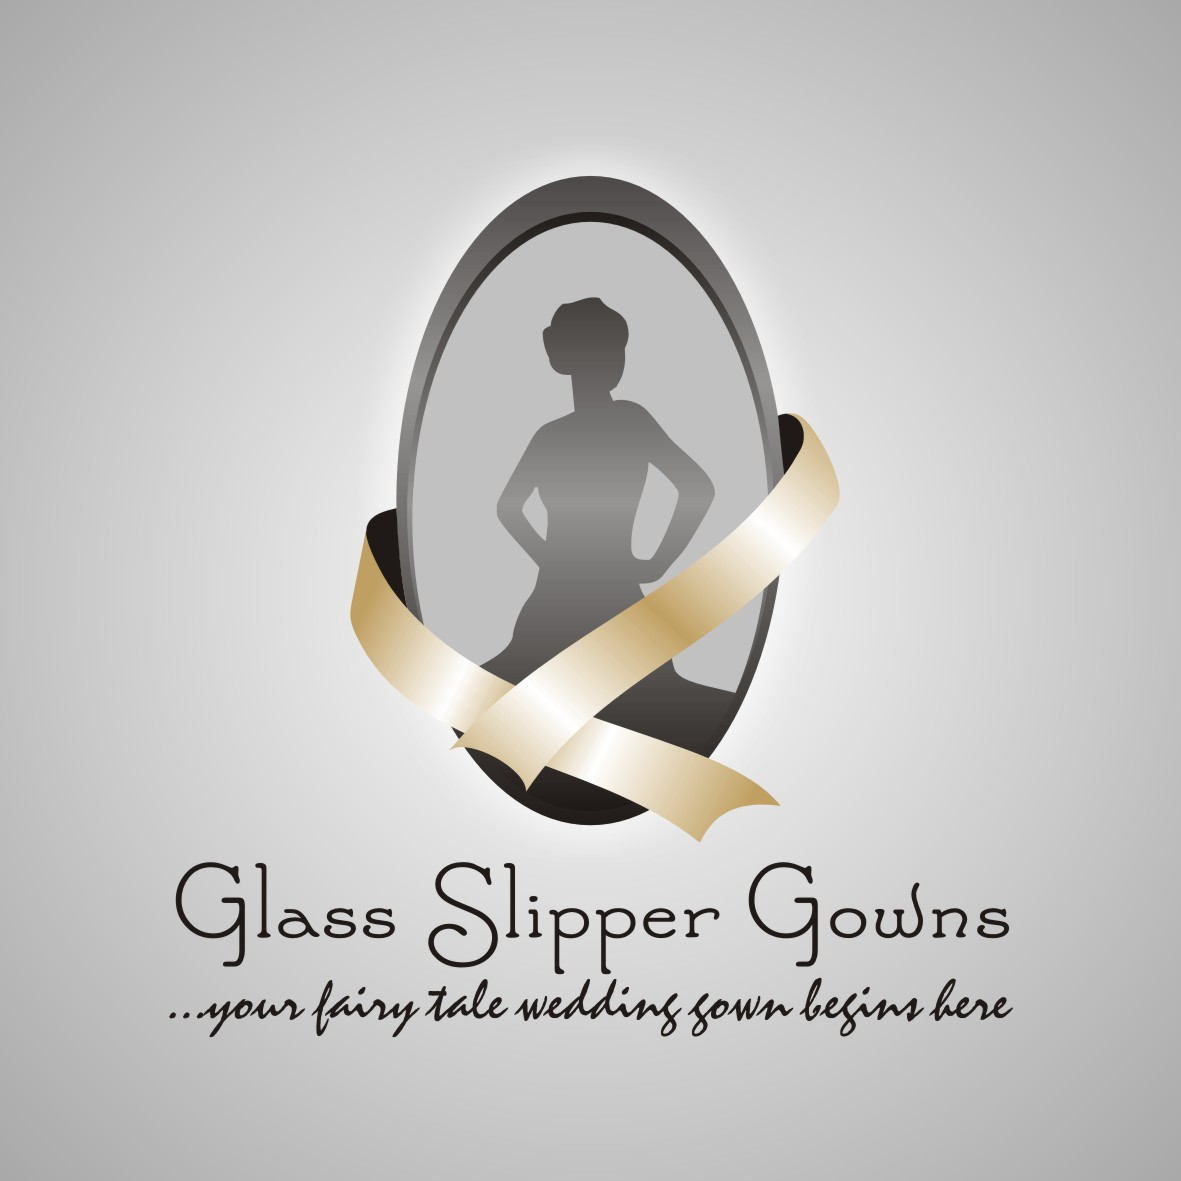 Logo Design by arteo_design - Entry No. 91 in the Logo Design Contest New Logo Design for Glass Slipper Gowns.